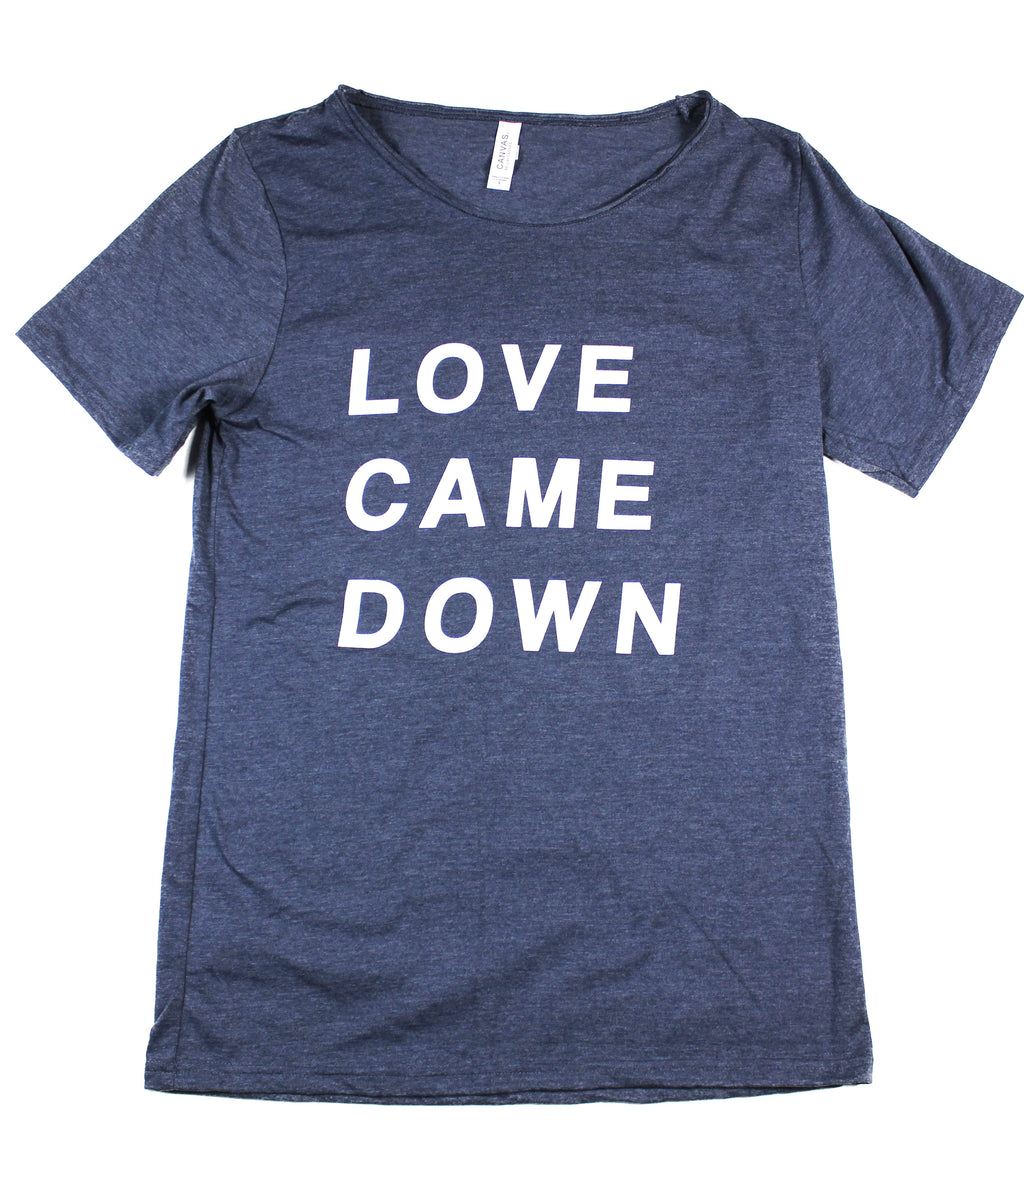 LOVE CAME DOWN NAVY RAW NECK T-SHIRT